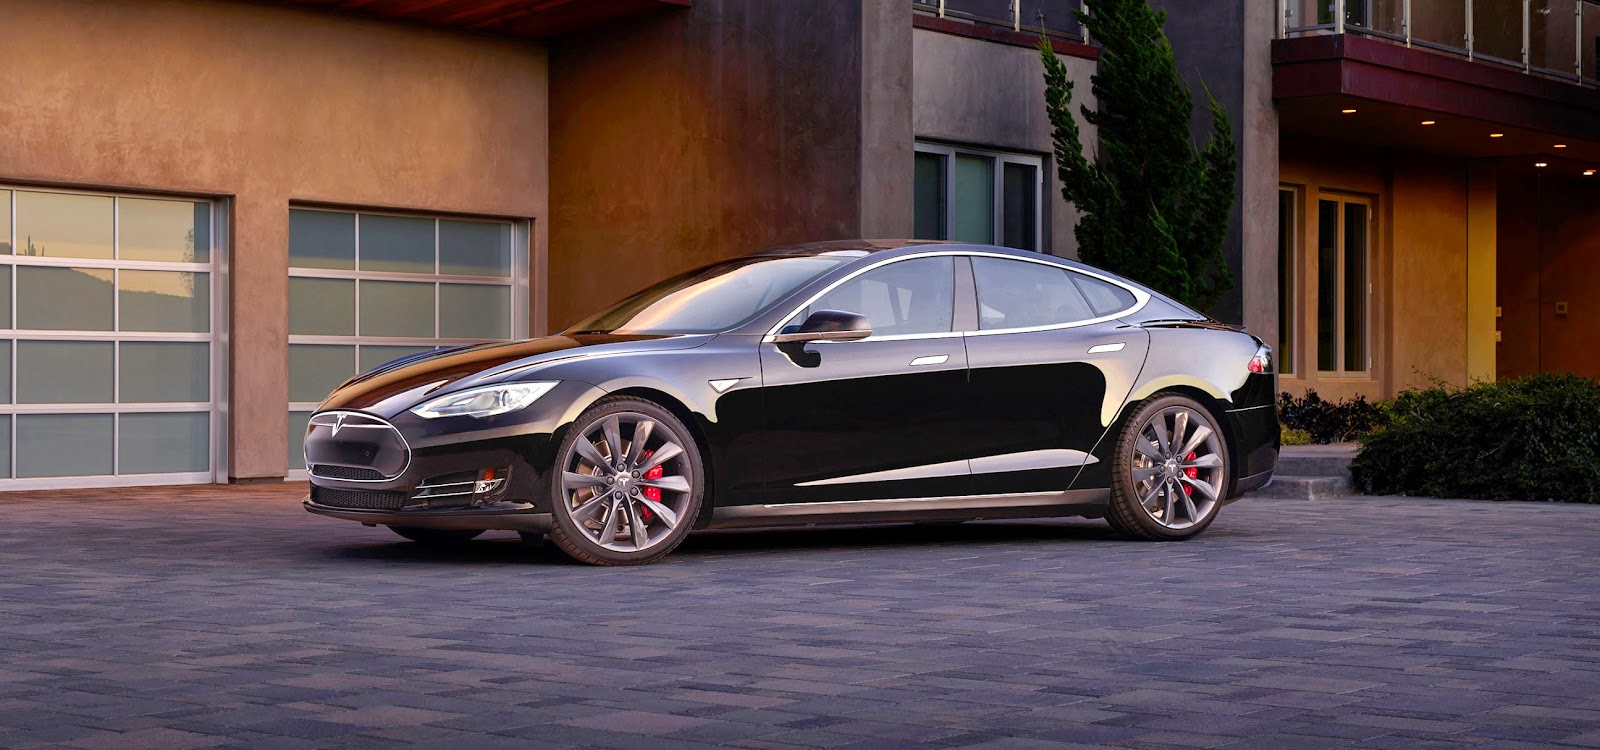 Click to visit Tesla Motors and learn more about Model S